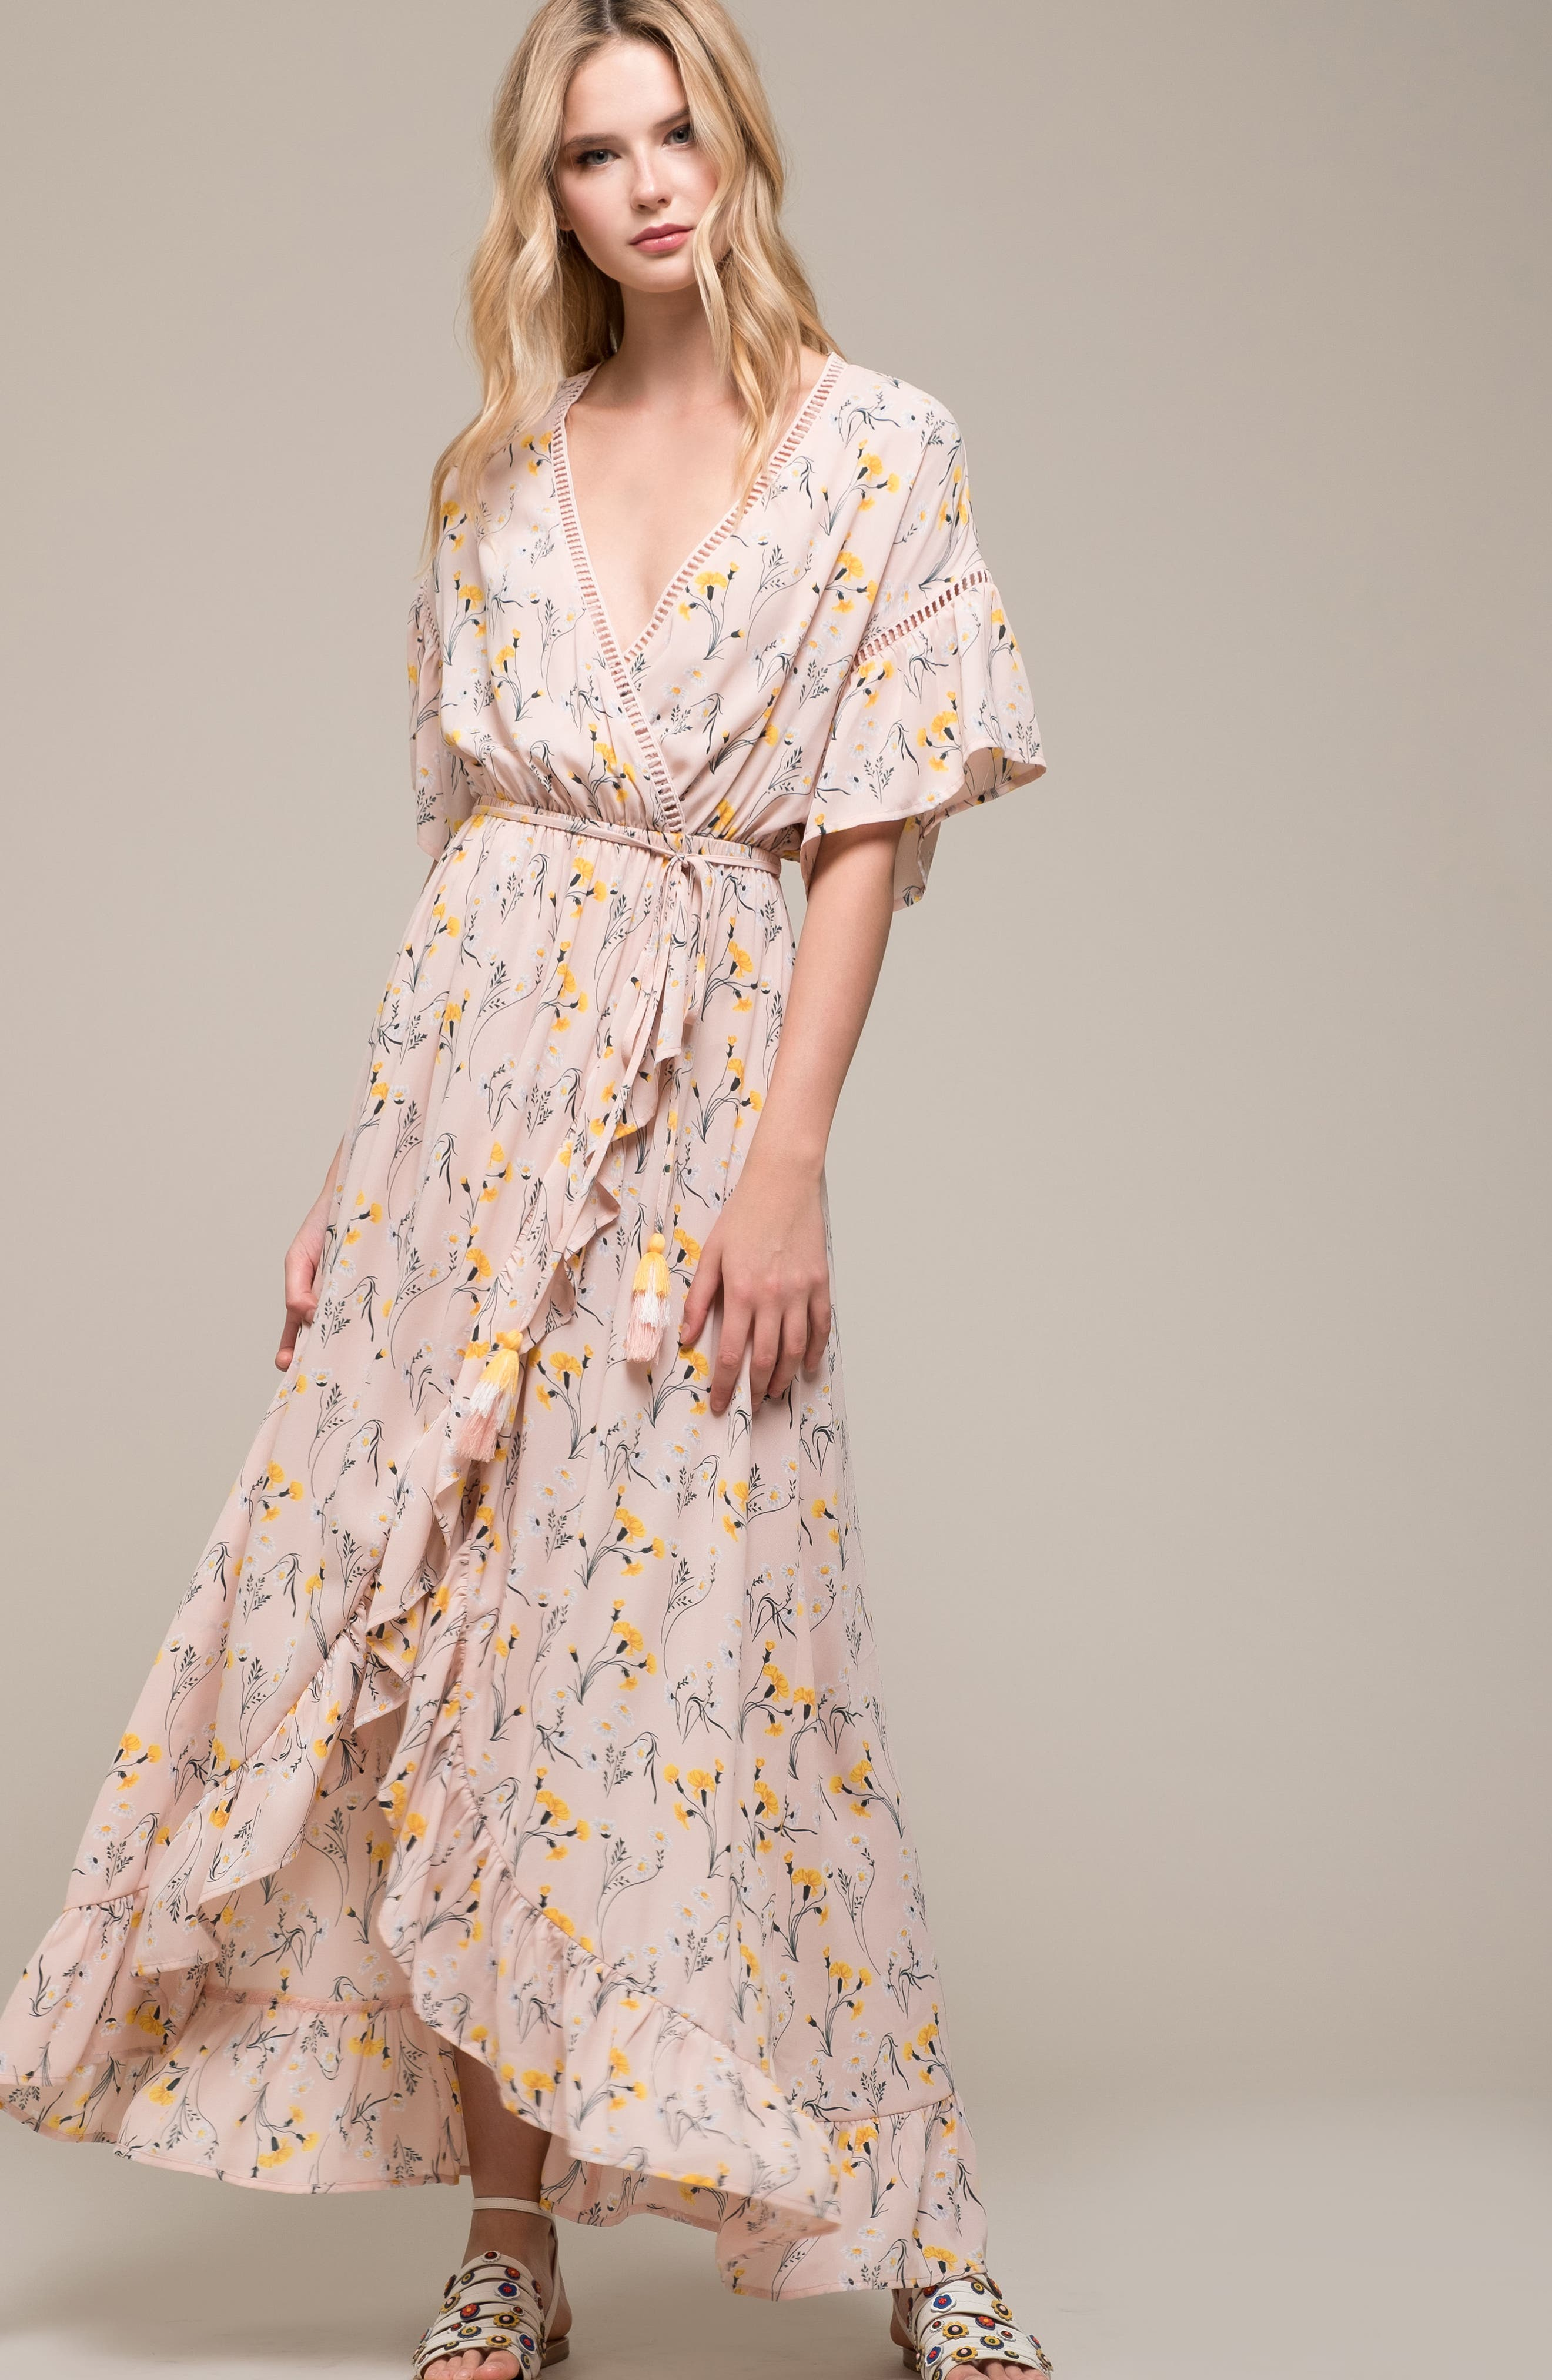 Romance Floral Wrap Style Dress,                             Alternate thumbnail 7, color,                             650